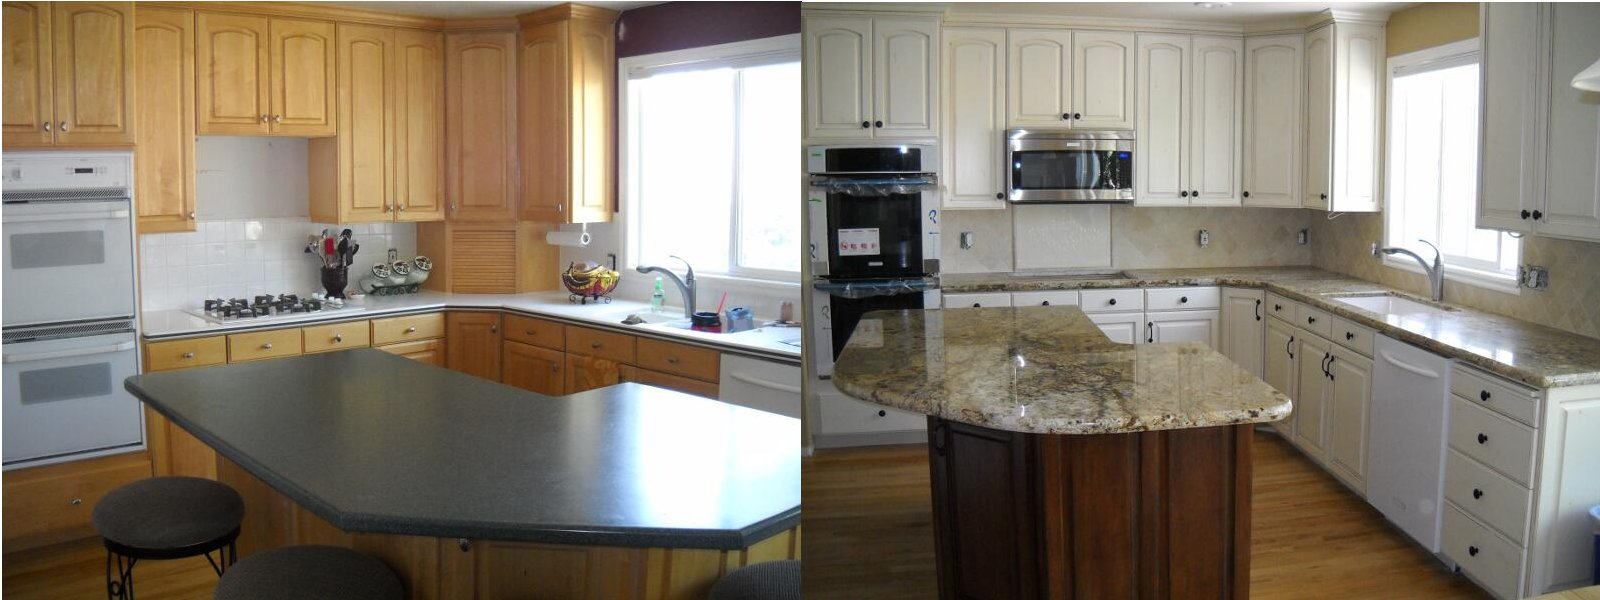 Telisa 39 s cabinet refinishing for Cabinets before and after